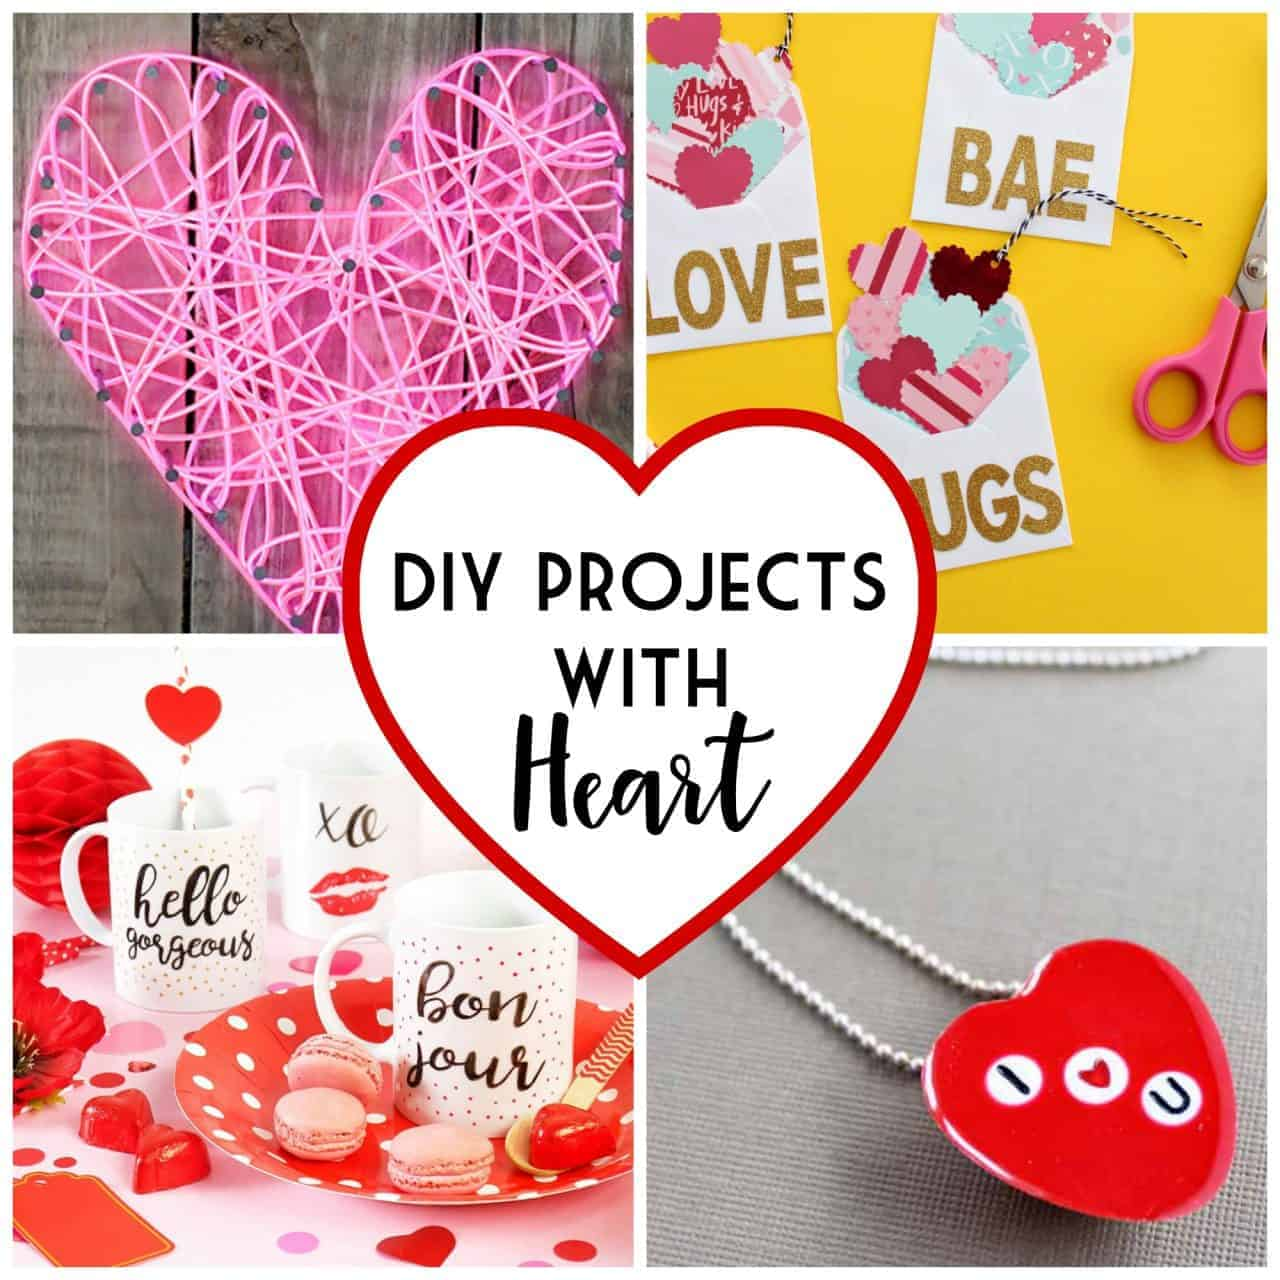 Collage of cute Valentine's Day projects to make yourself or with friends